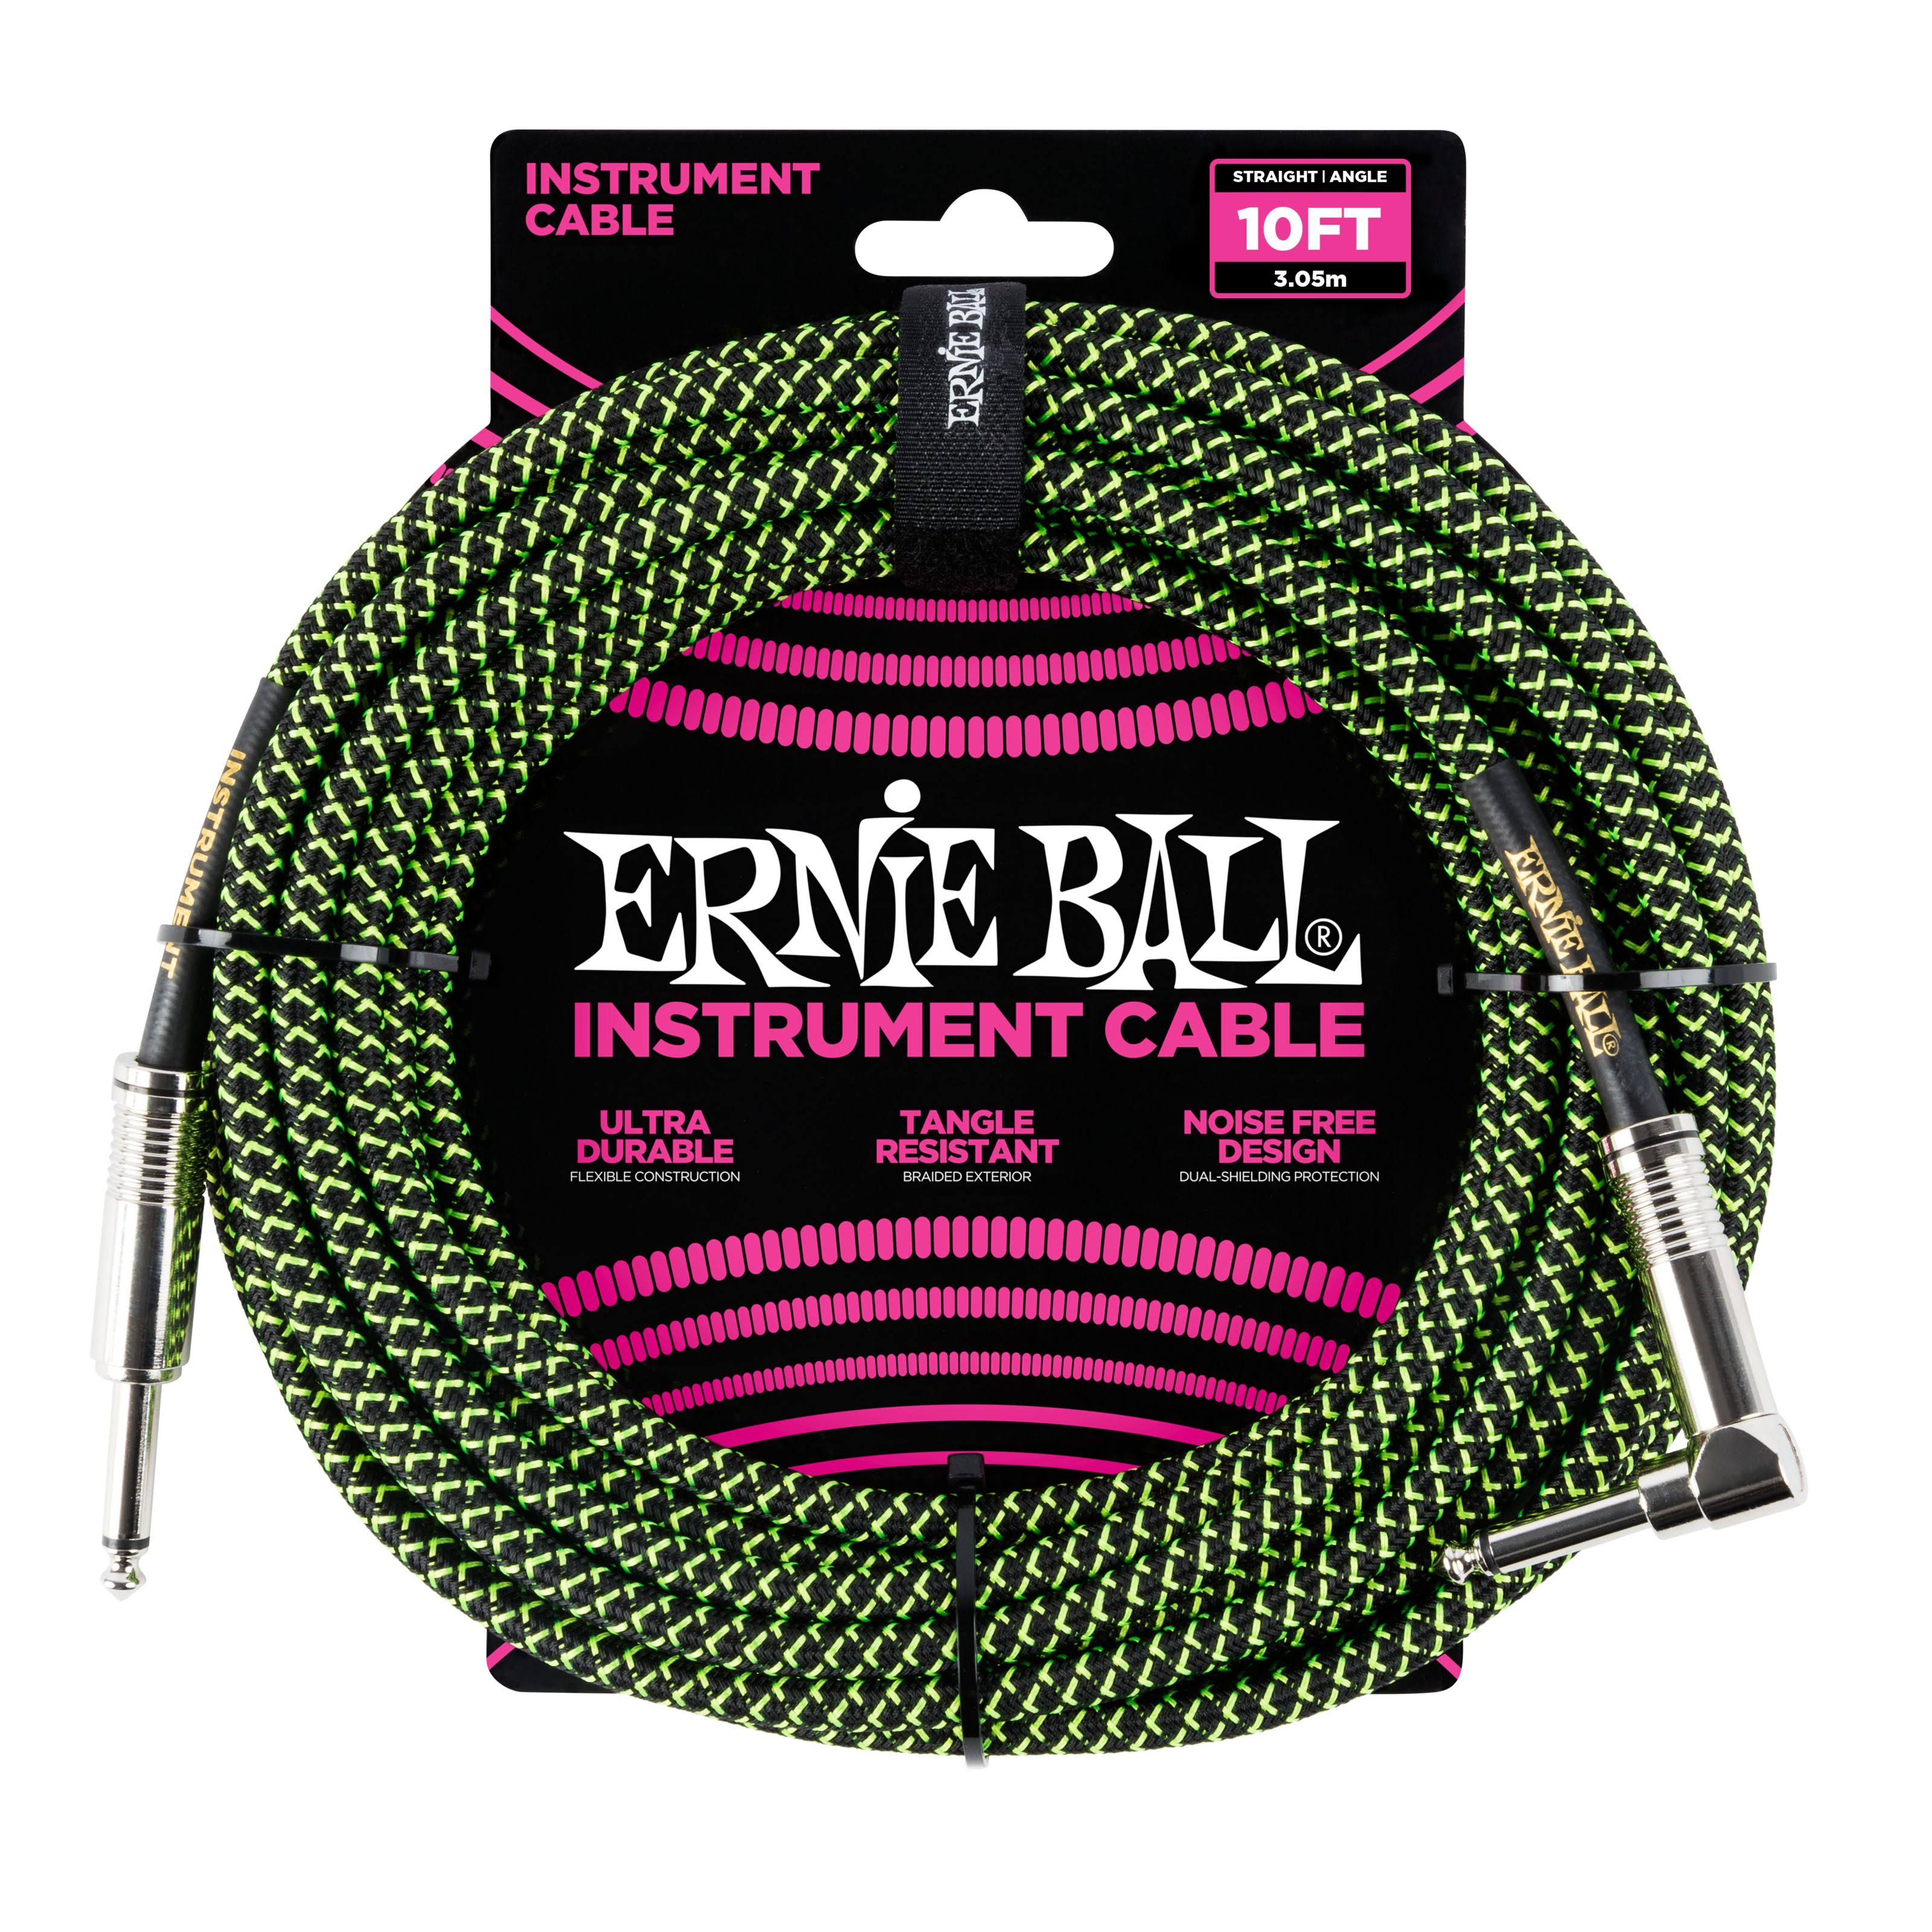 Ernie Ball P06077 Braided Instrument Cable - Black and Green, 3m